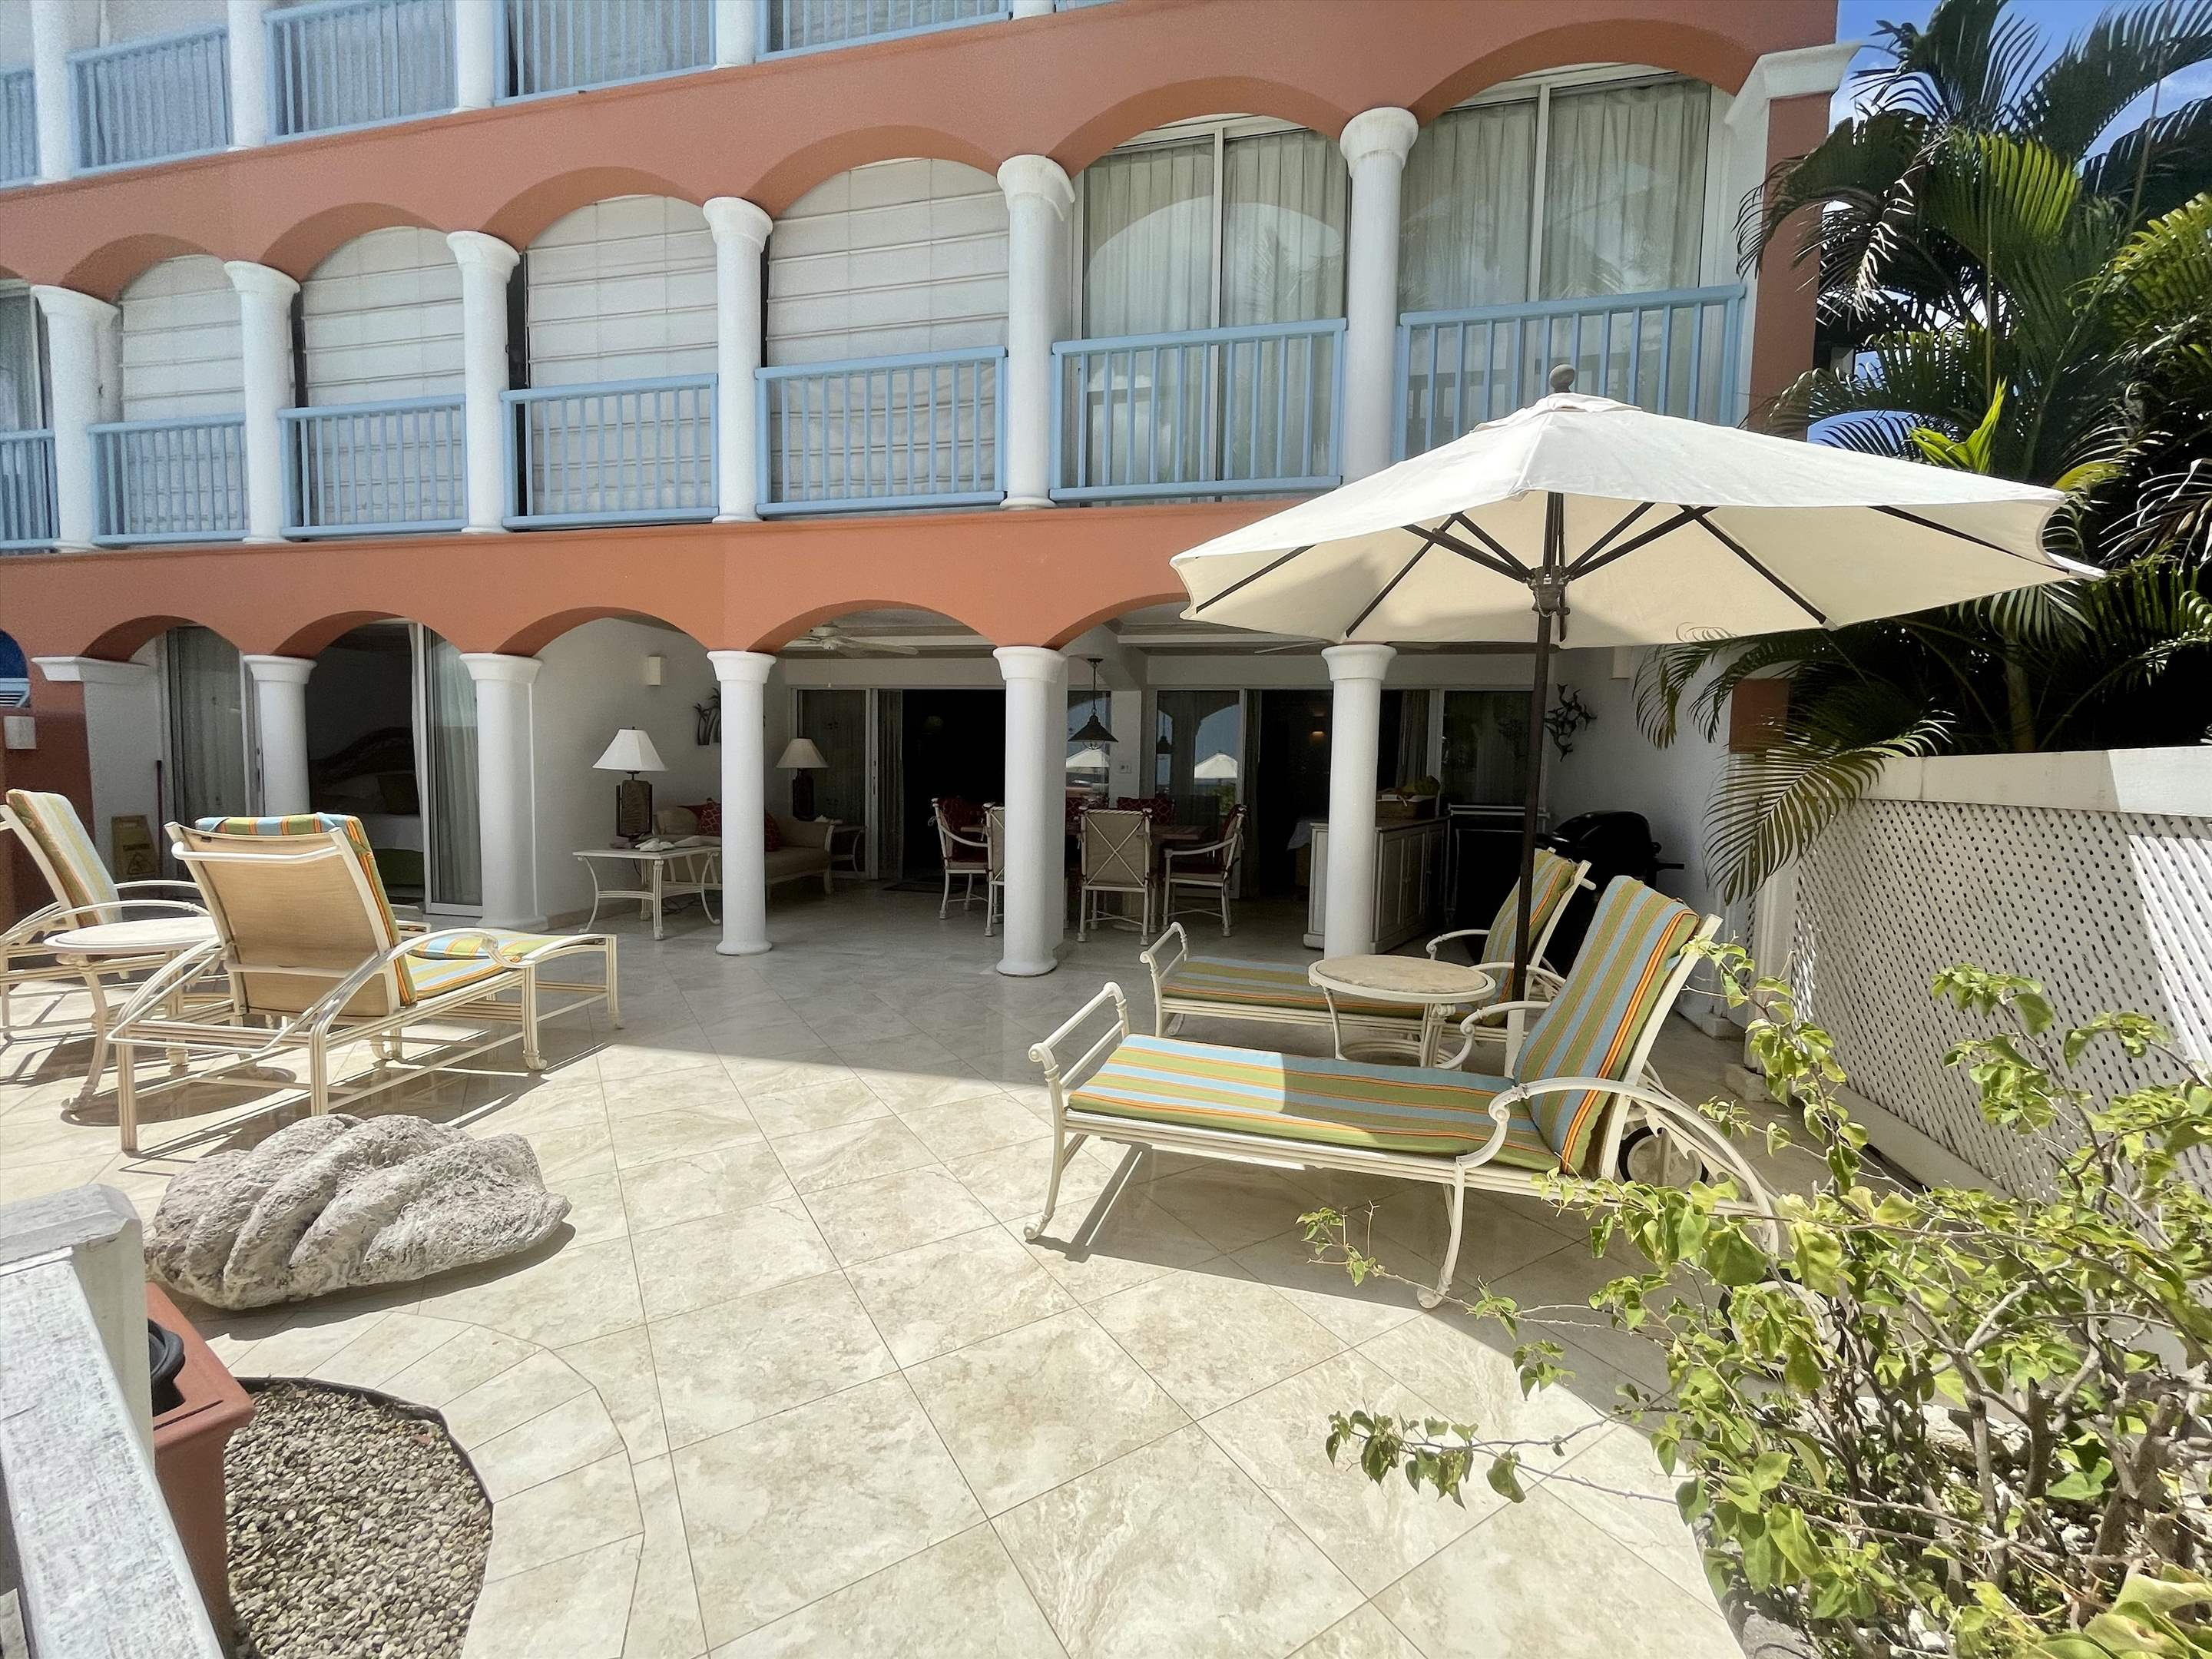 Villas on the Beach 101, 1 bedroom, 1 bedroom apartment in St. James & West Coast, Barbados Photo #5